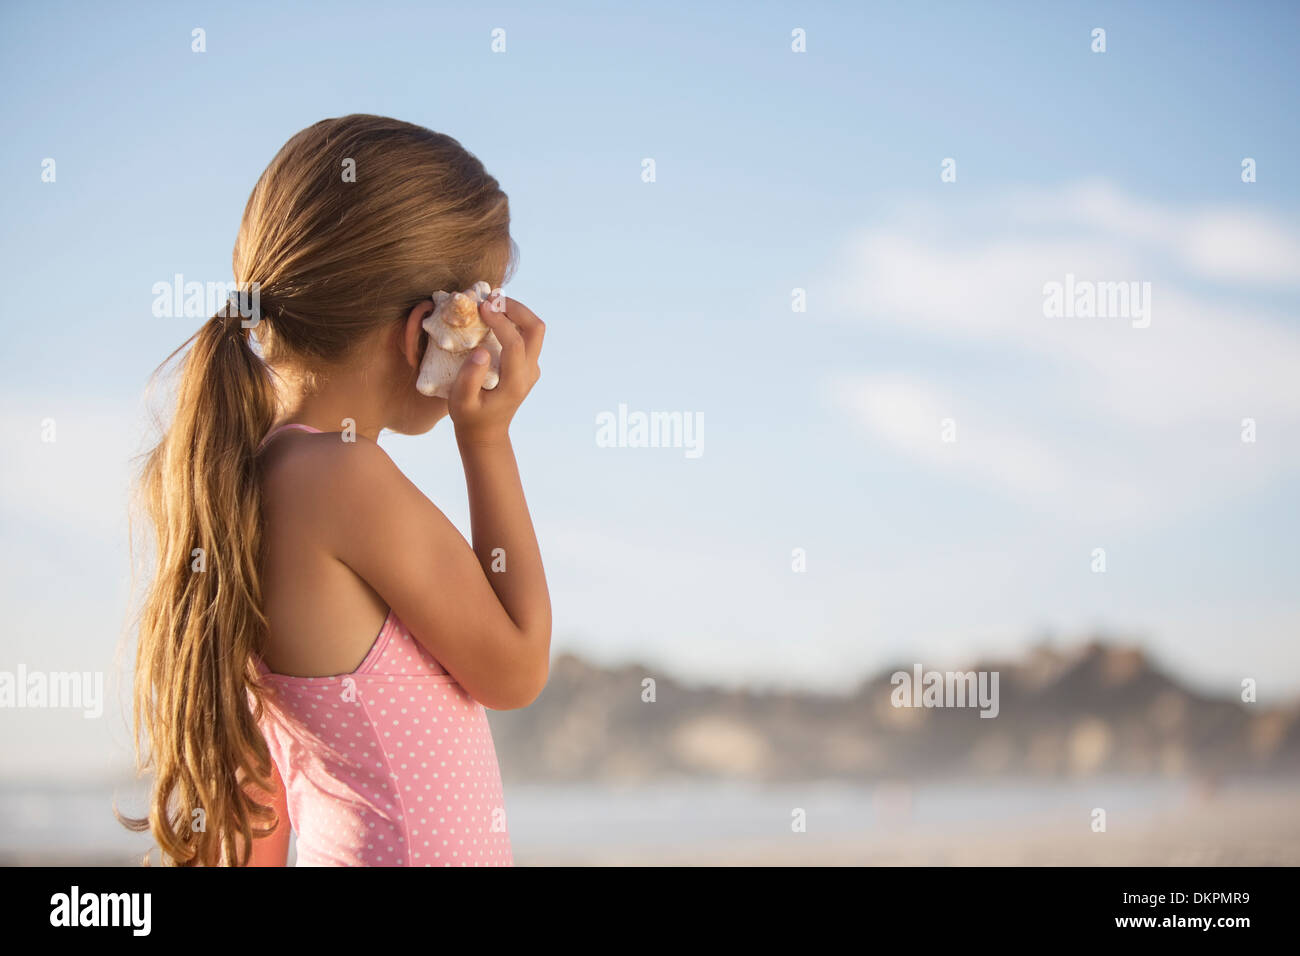 Girl listening to seashell on beach - Stock Image